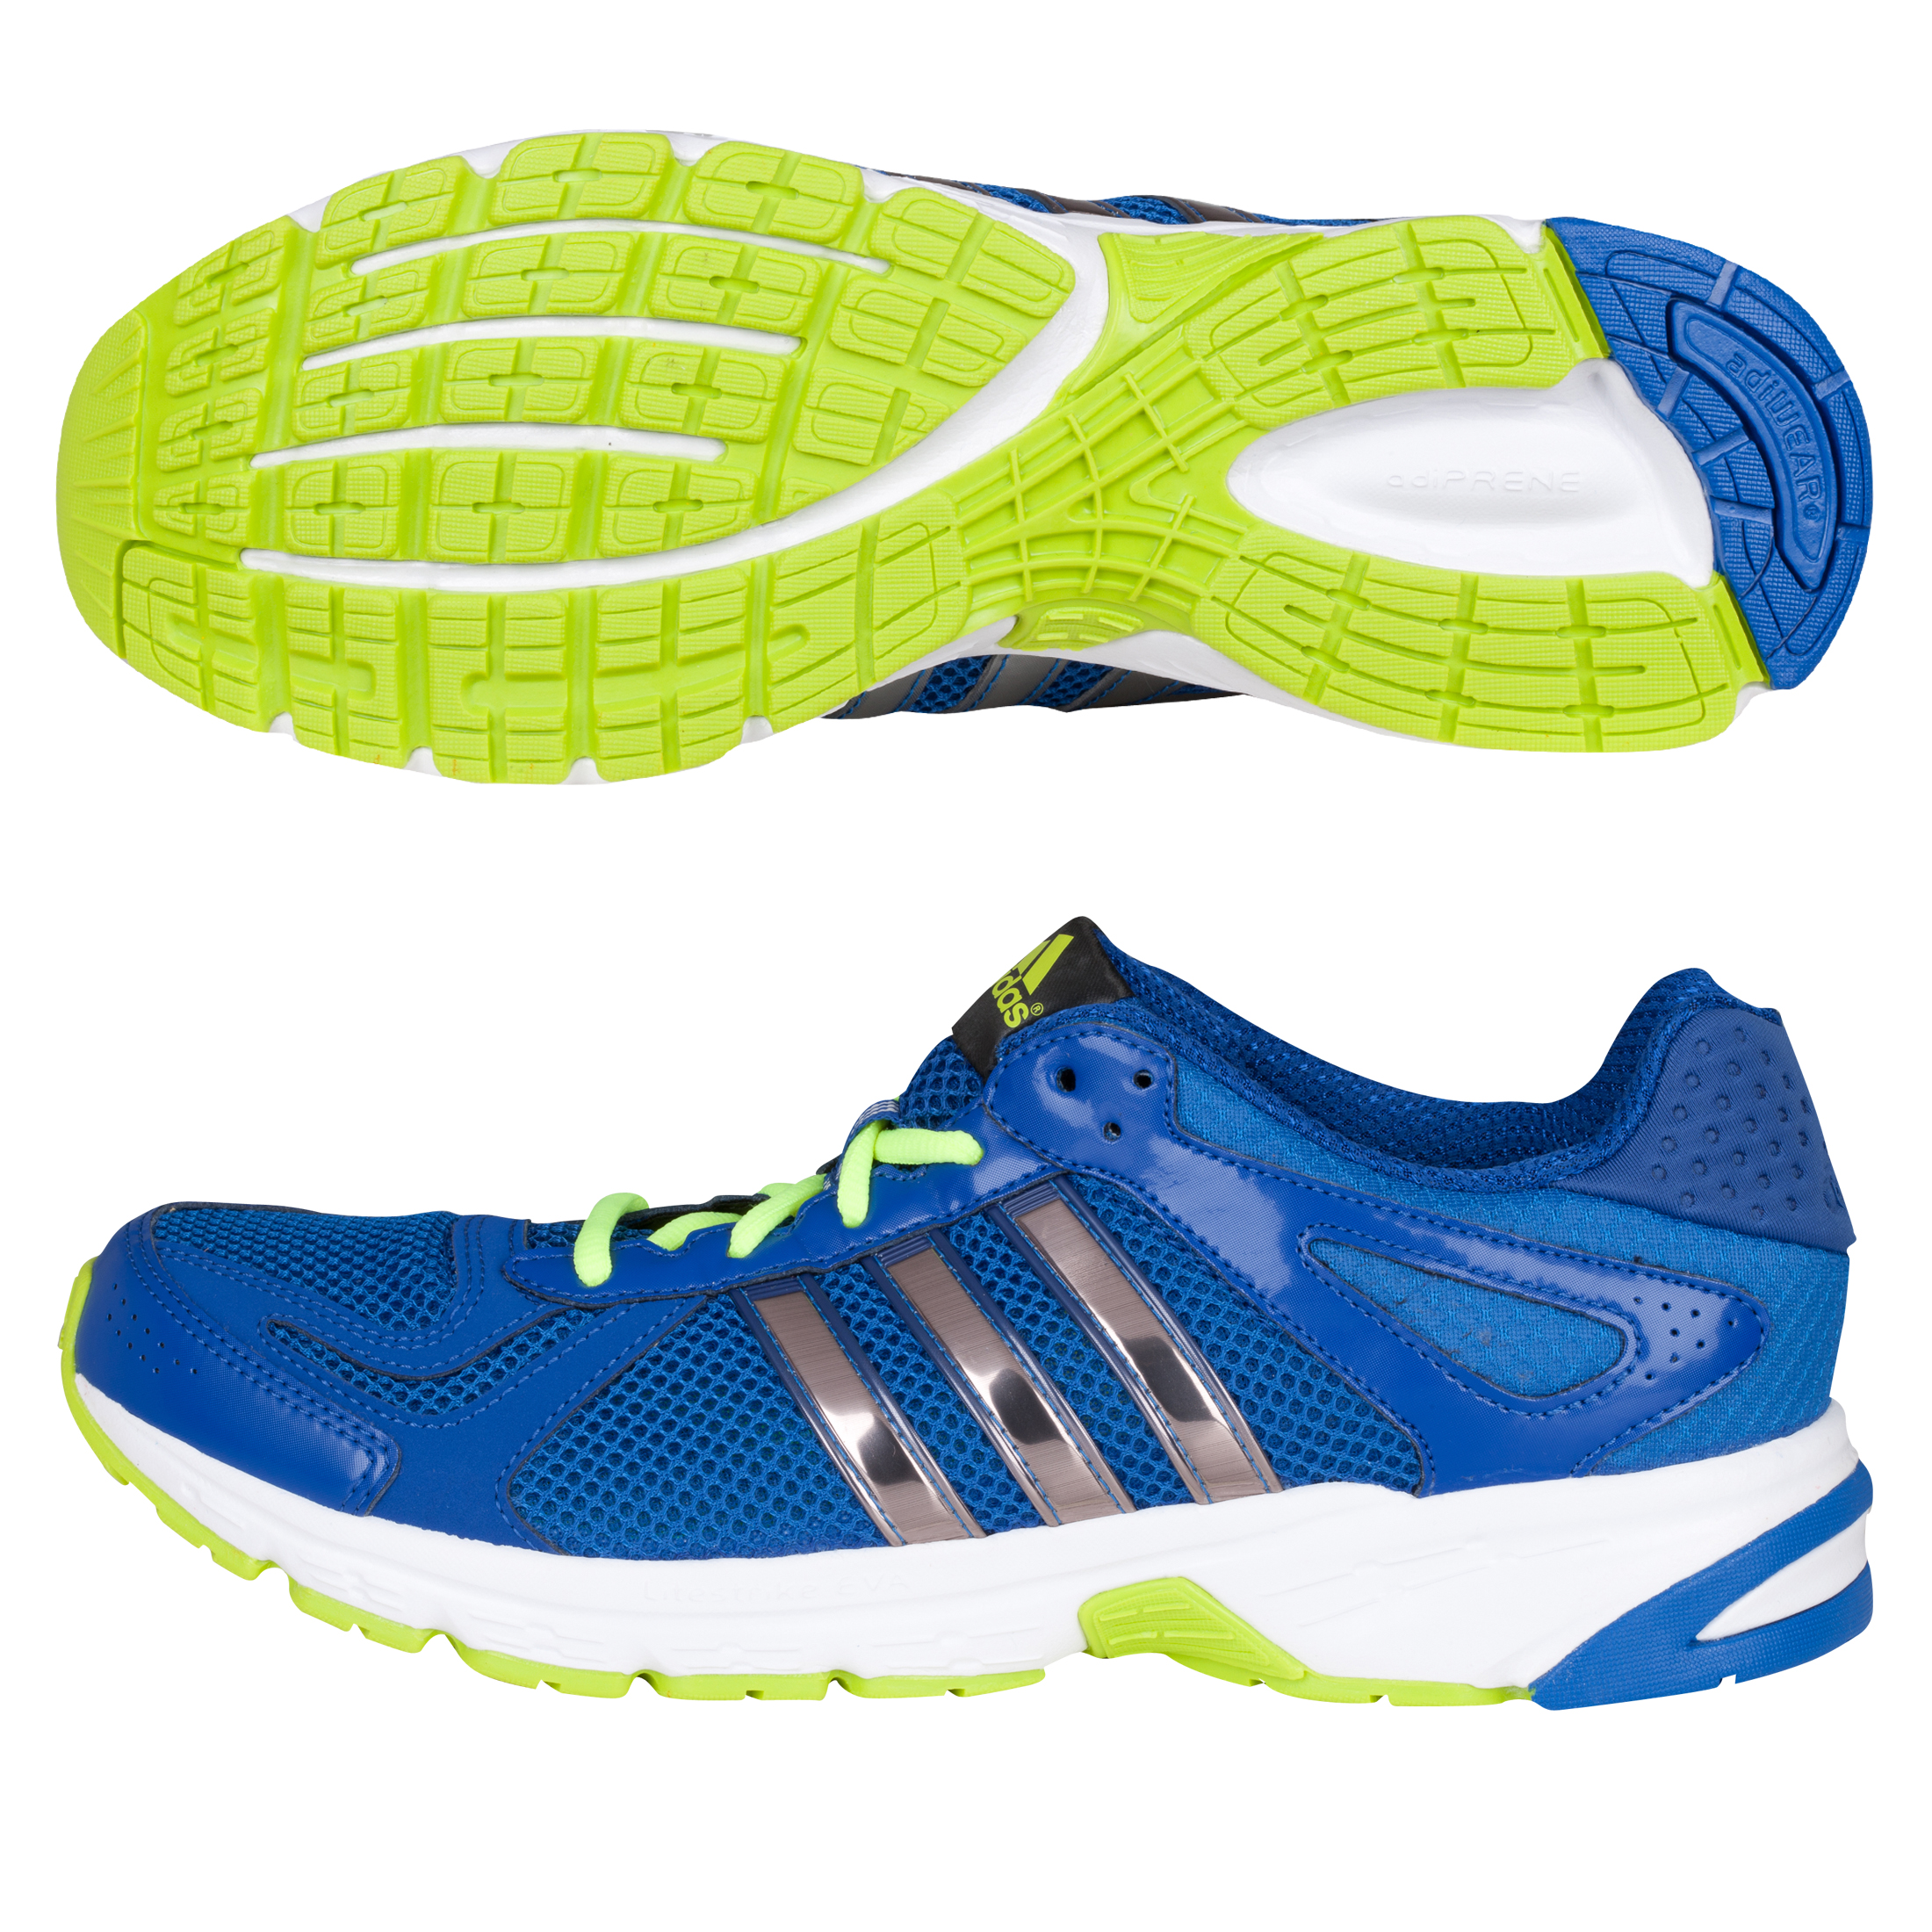 Adidas Duramo 5 Trainer - Blue Beauty/Night Met/Electricity Blue